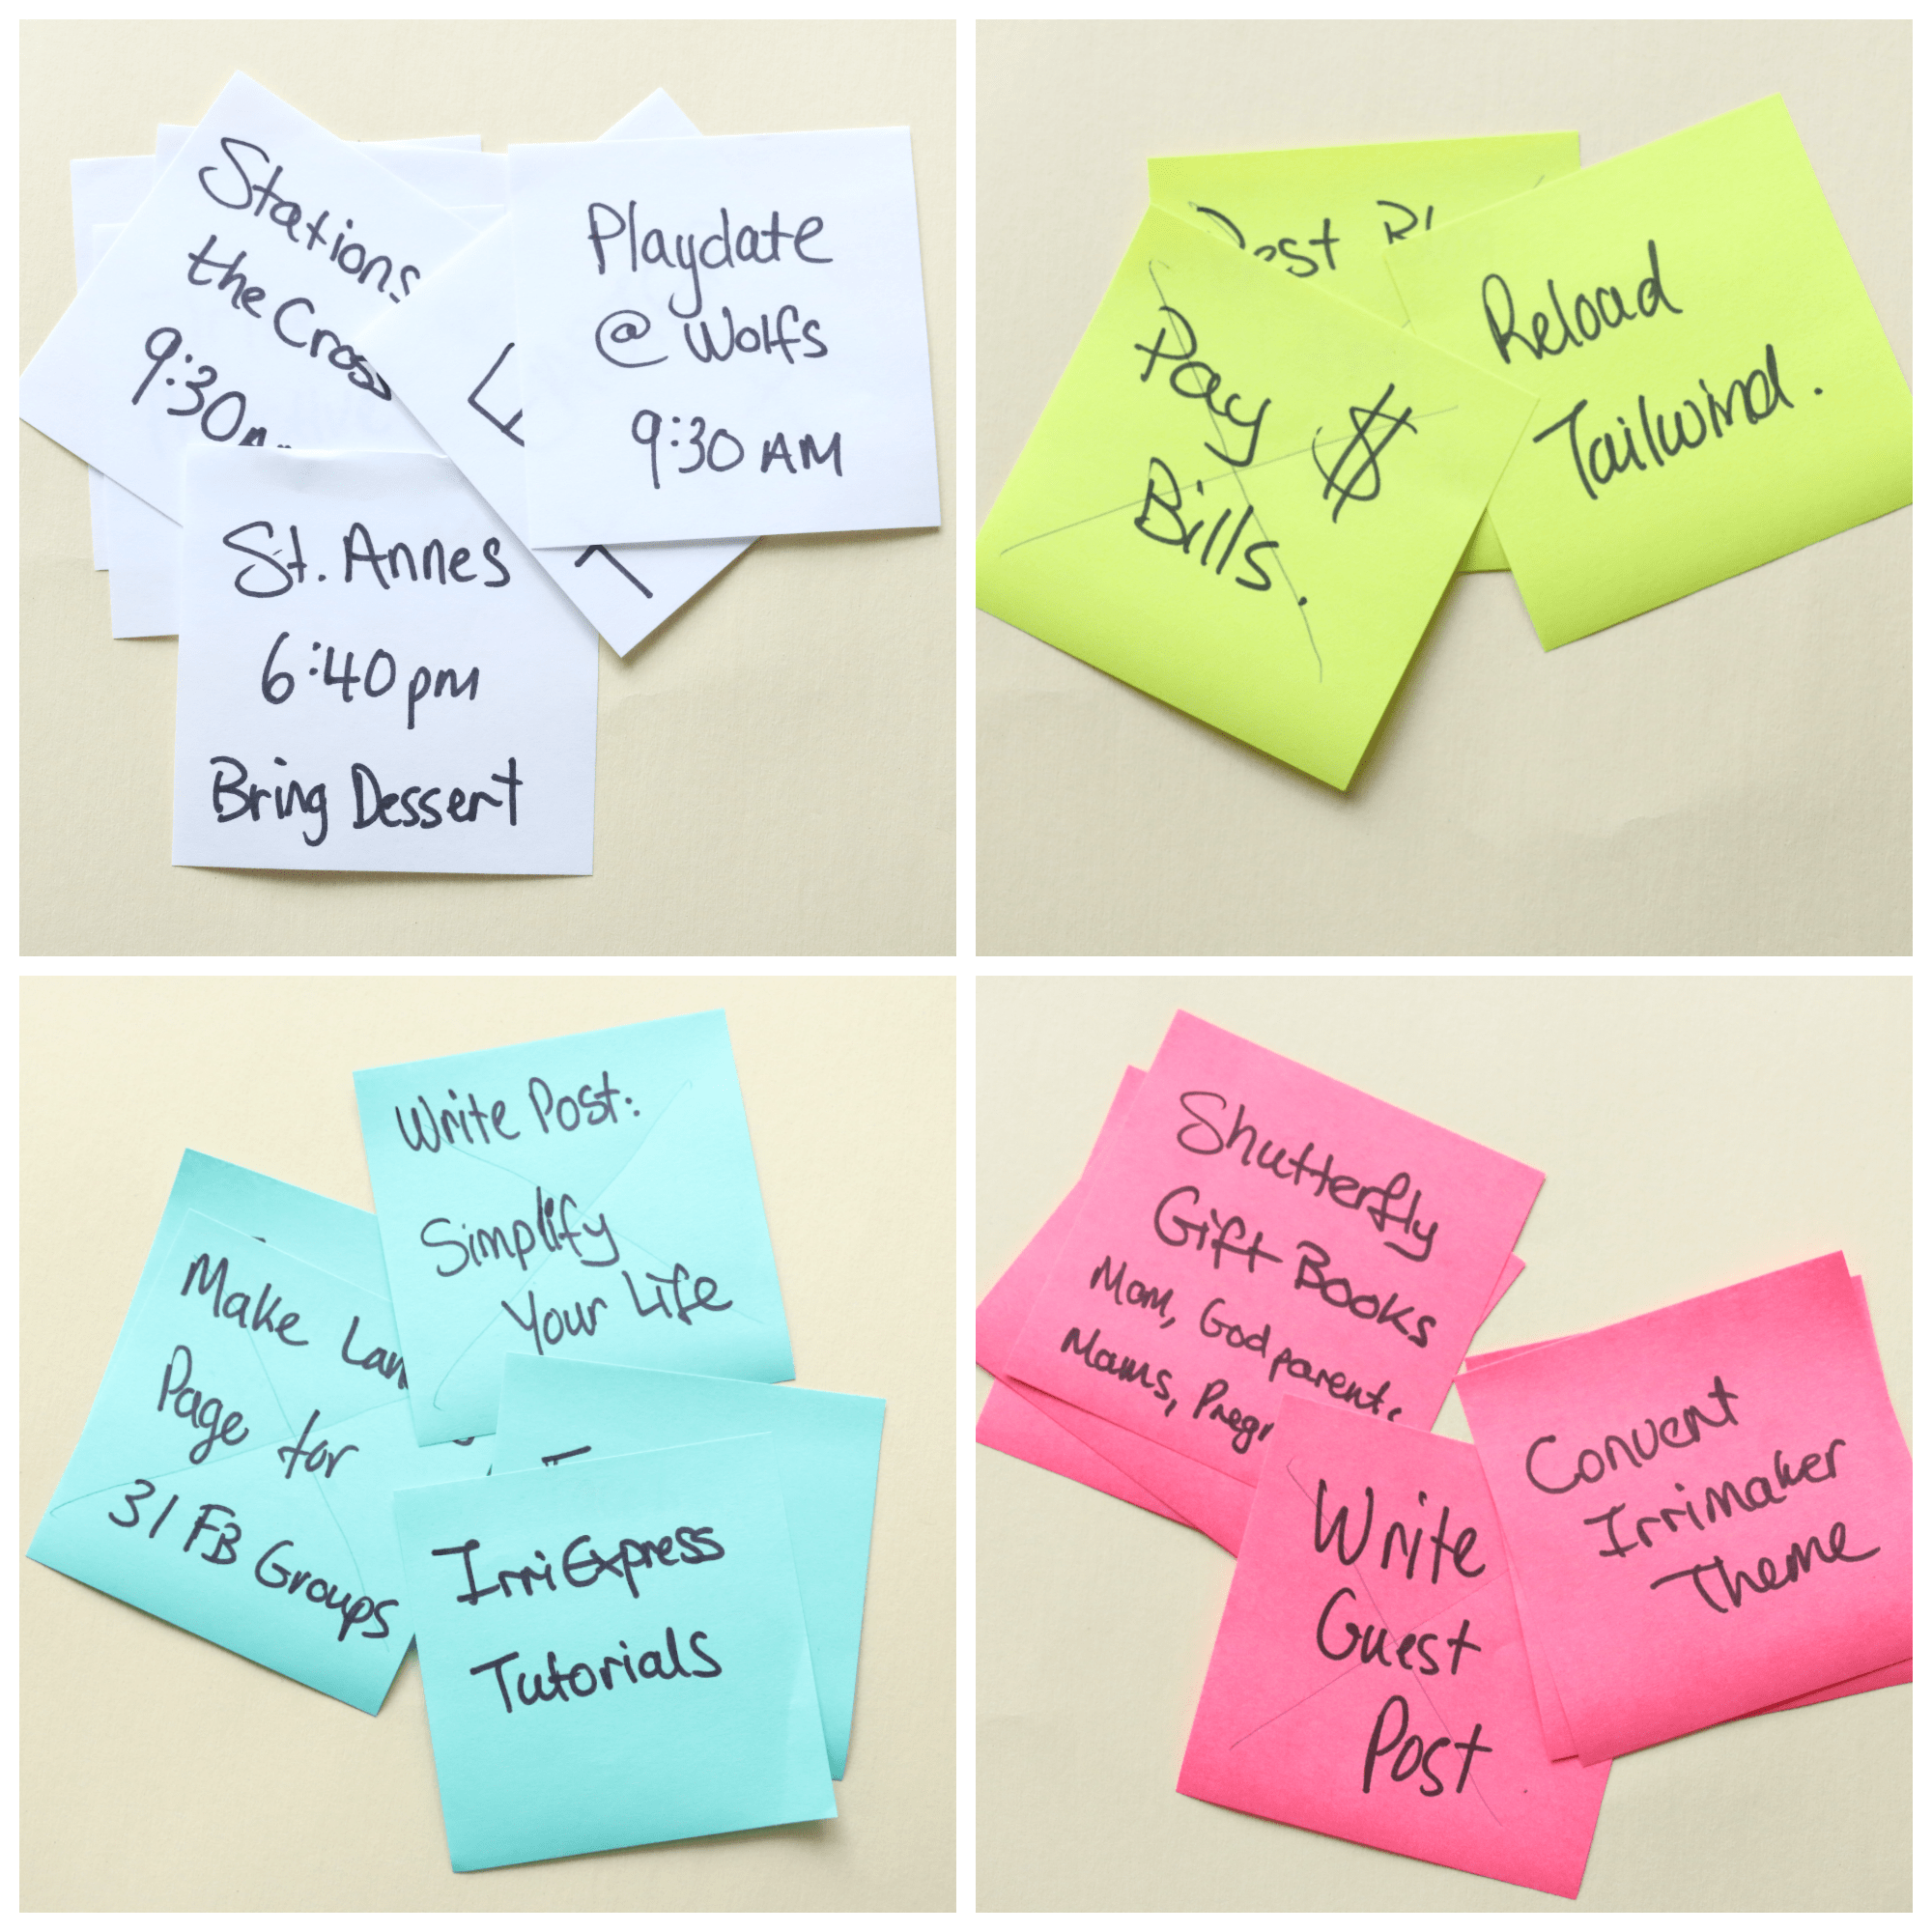 Super Simple Weekly Schedule to Get Stuff Done Post-it Notes Organize and Schedule my Life with Post it notes - Super Simple Hack! 2